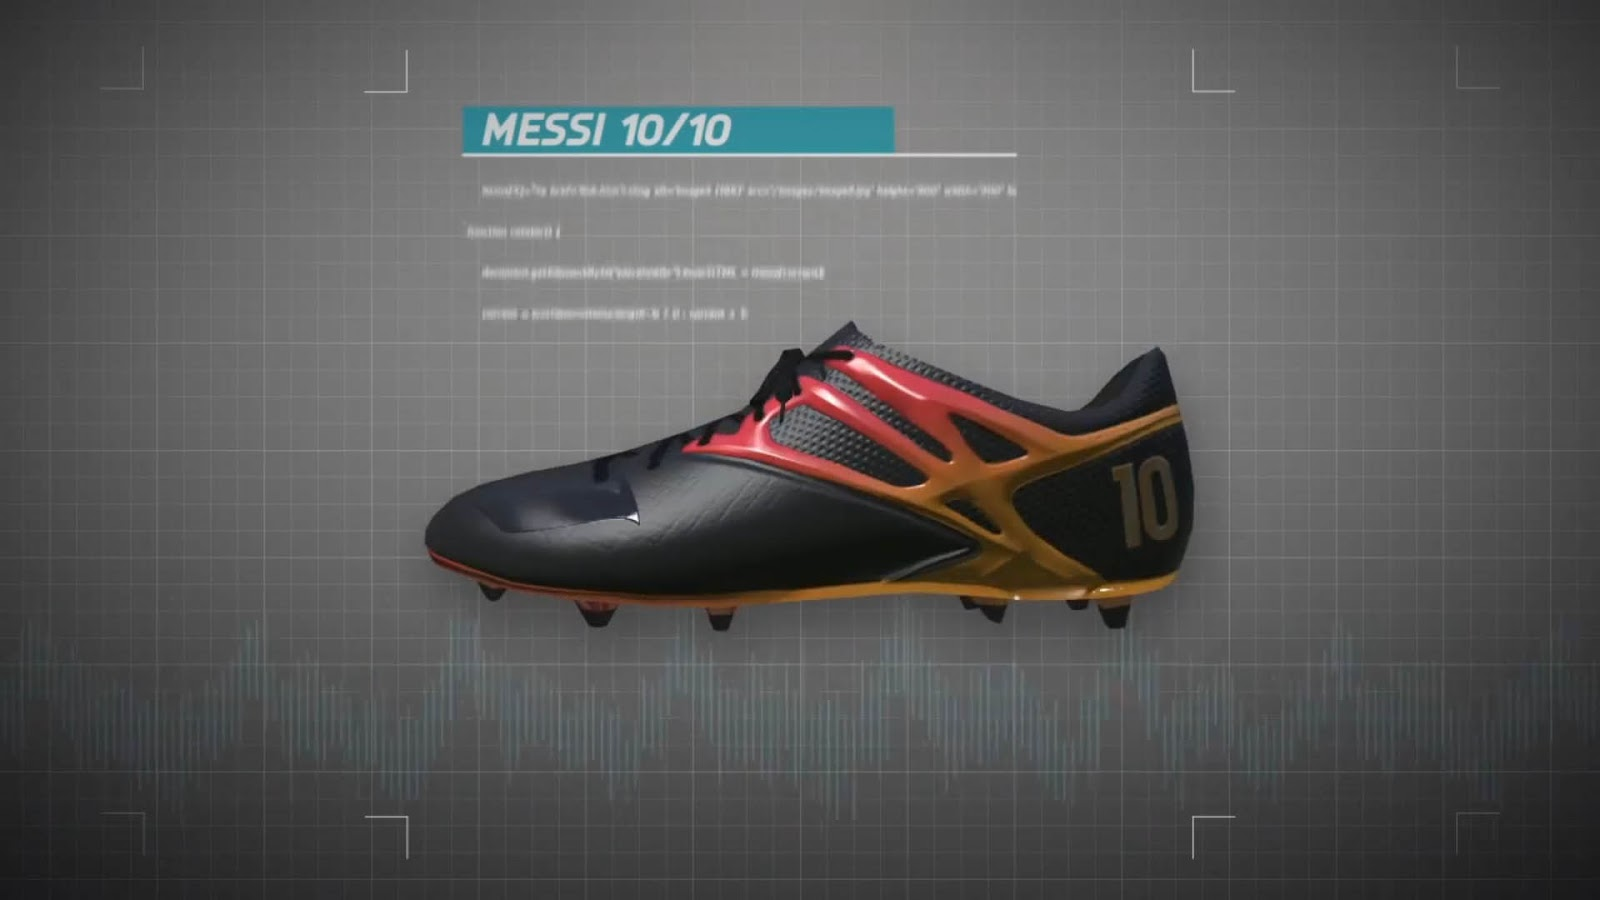 c6aed2e6726b messi tries on messi 1010 boots